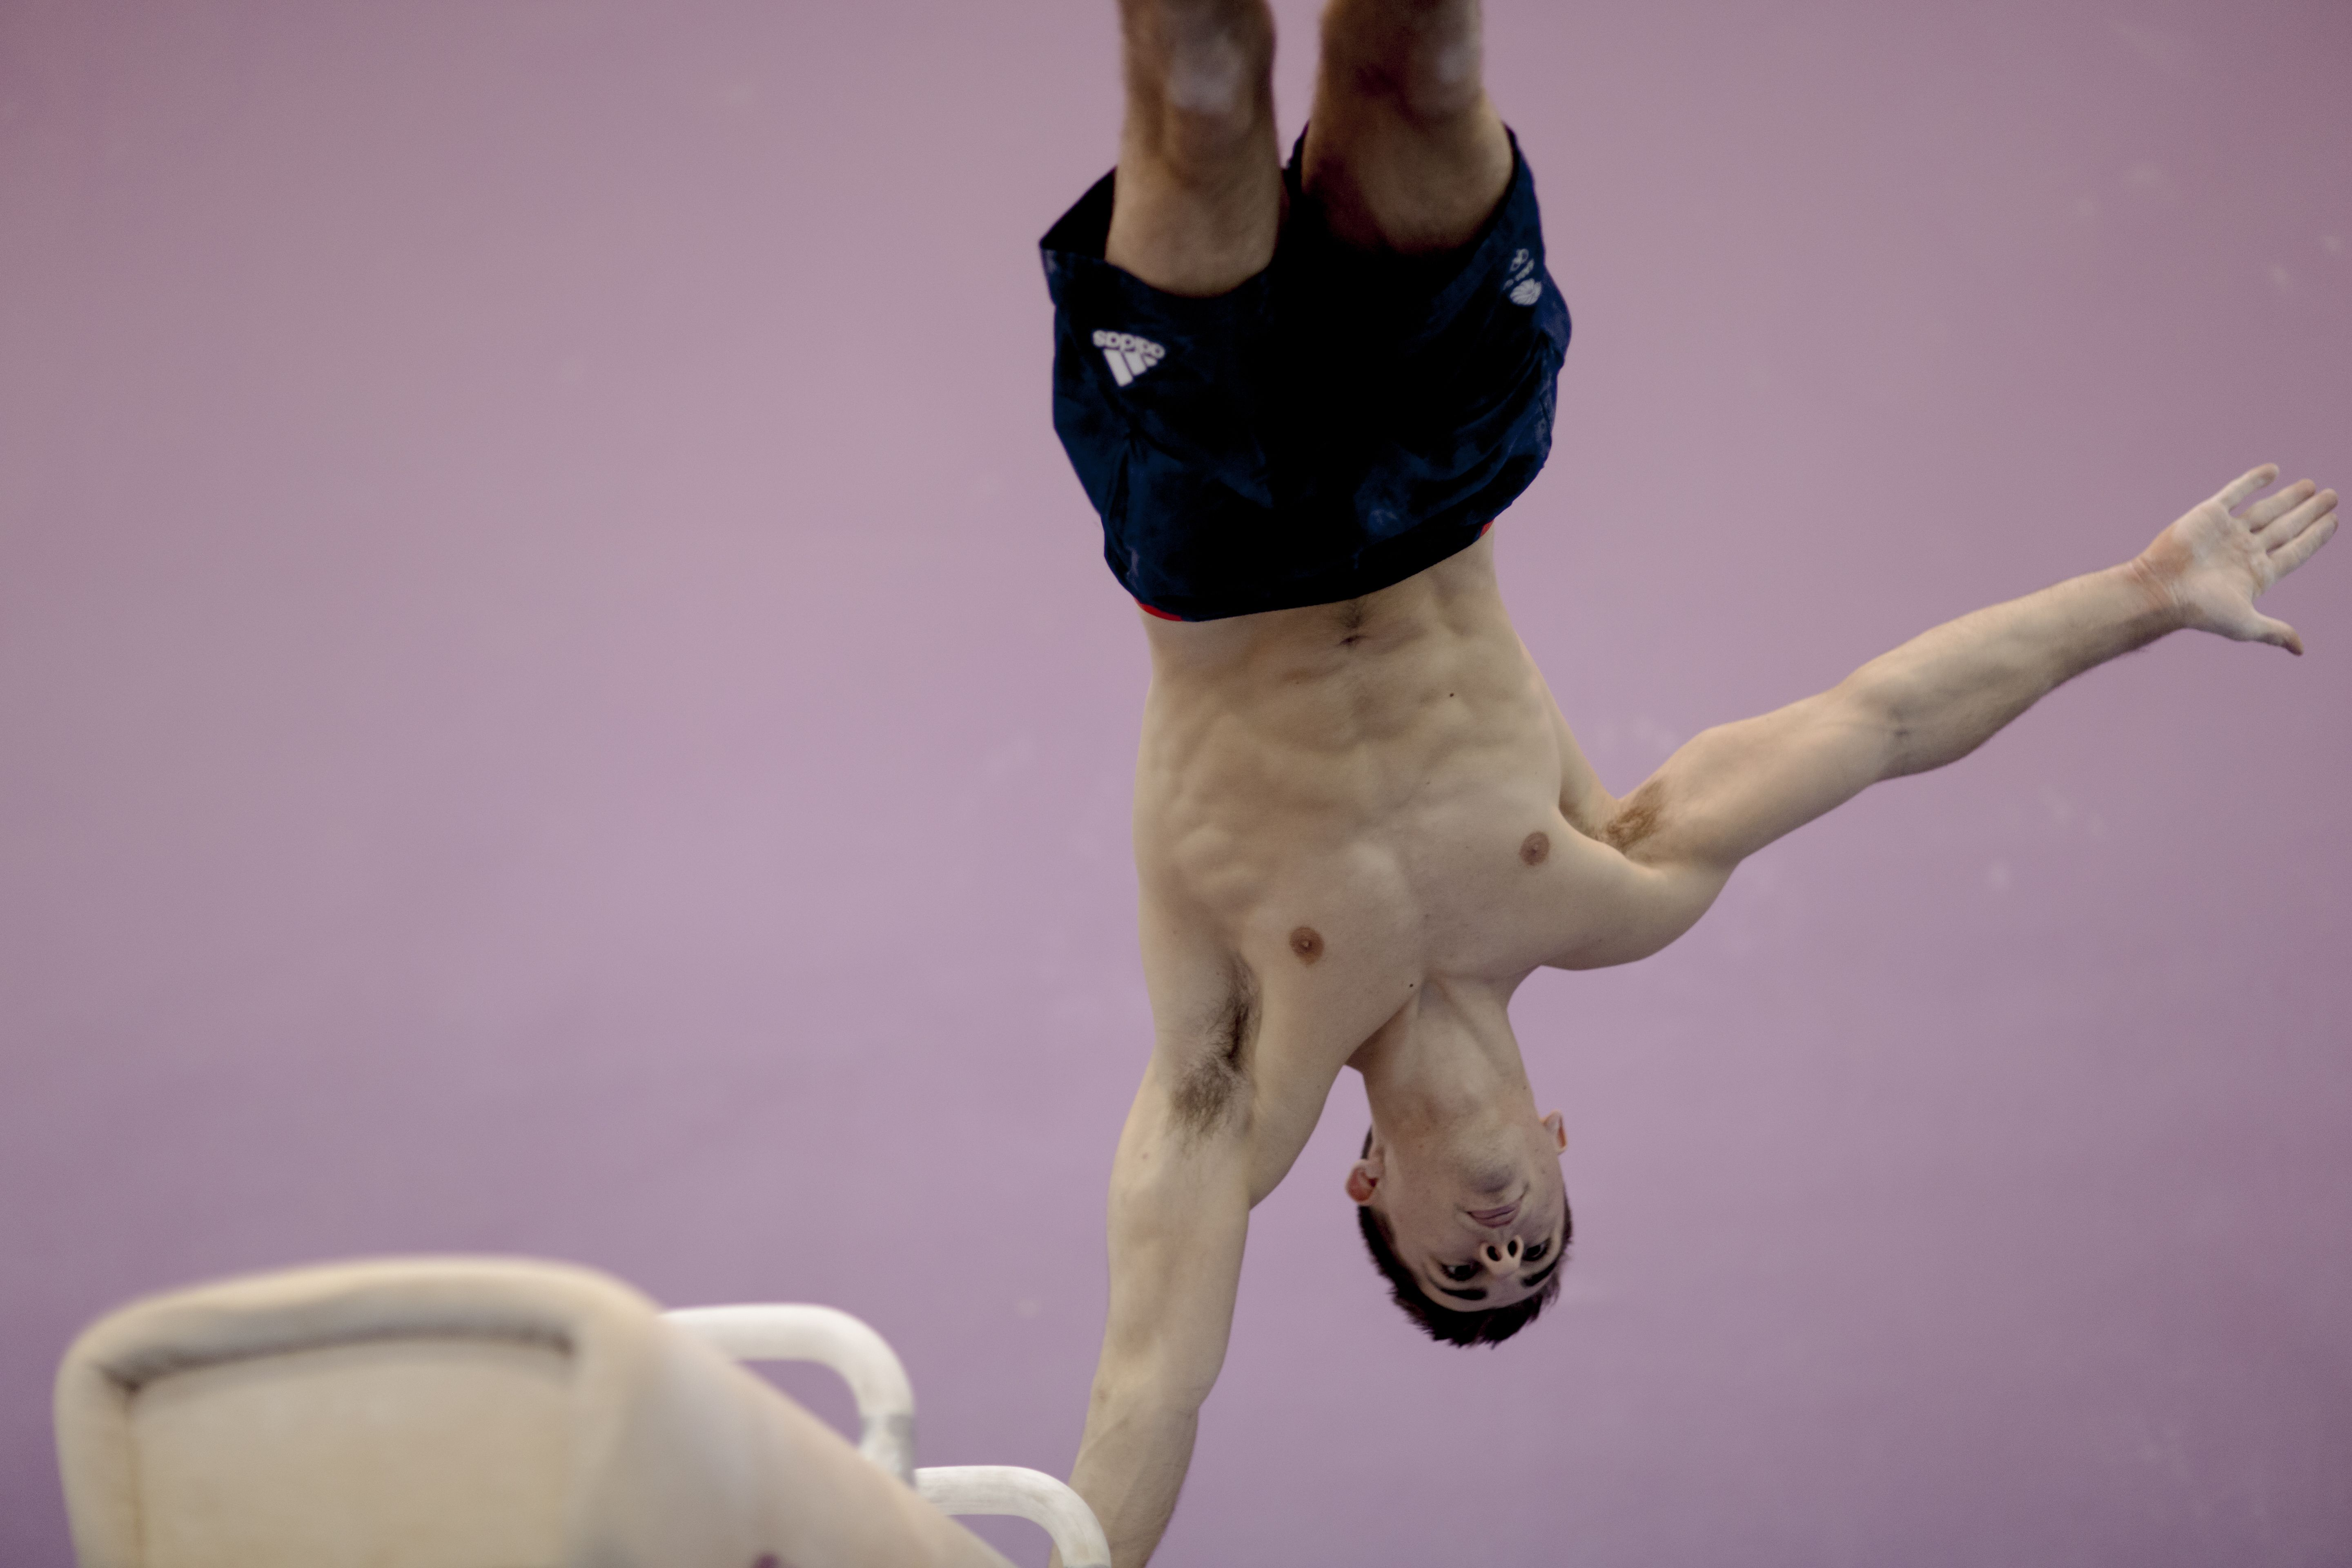 Pin By Curtis Price On Gymnasts